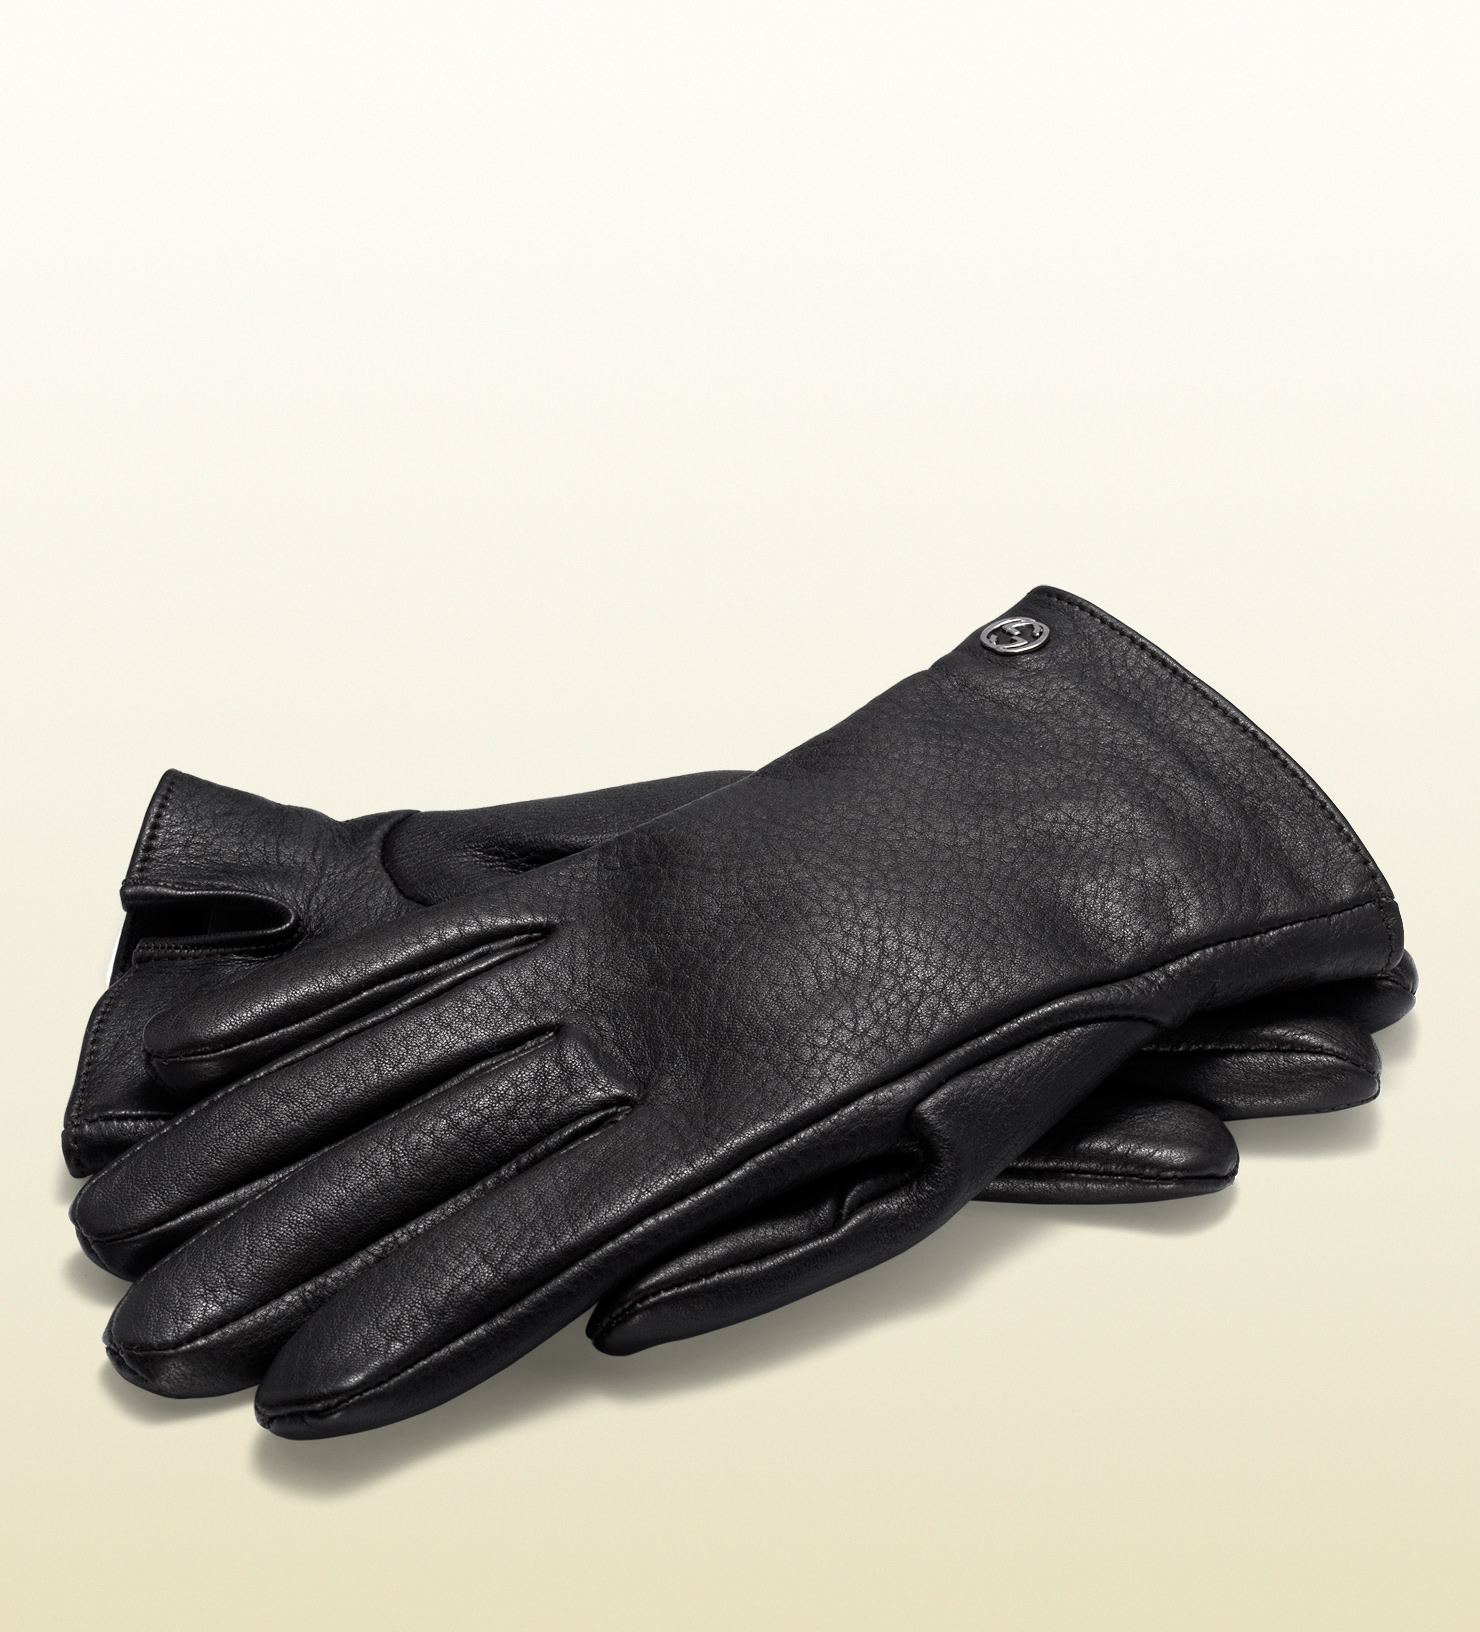 Prada mens leather gloves - Gallery Men S Leather Gloves